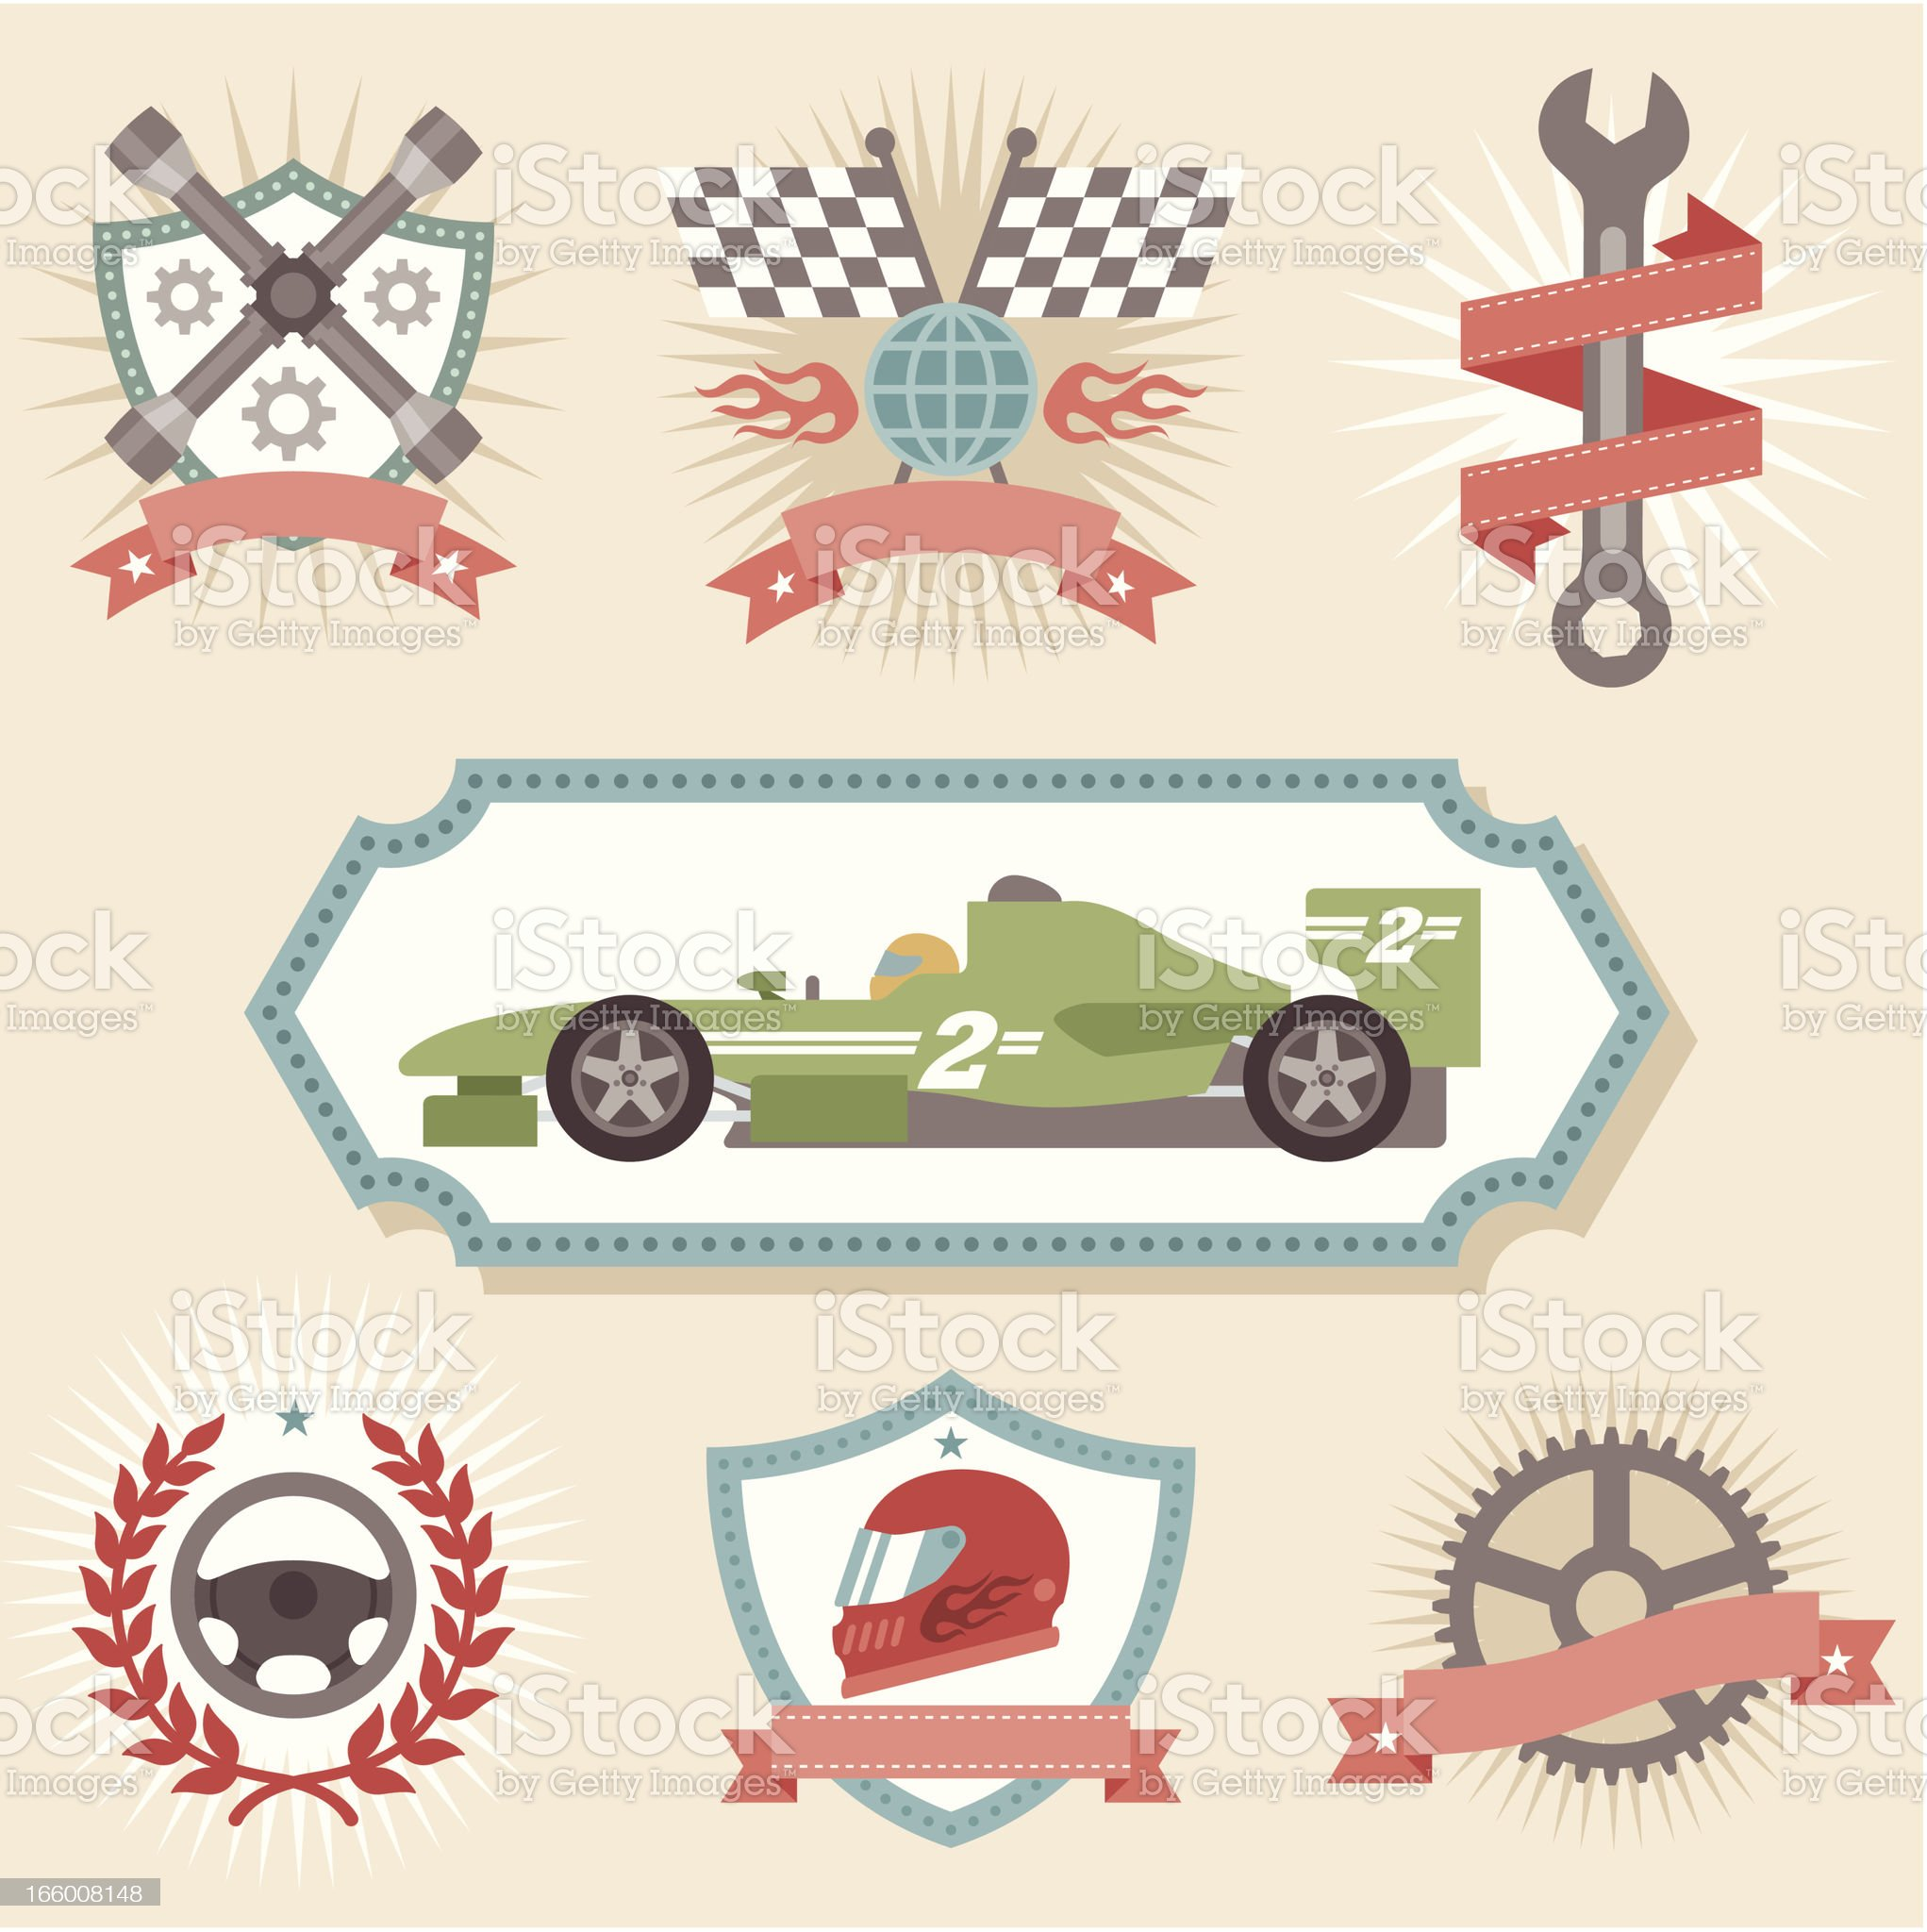 Colorful icon set with cars and mechanics themes royalty-free stock vector art